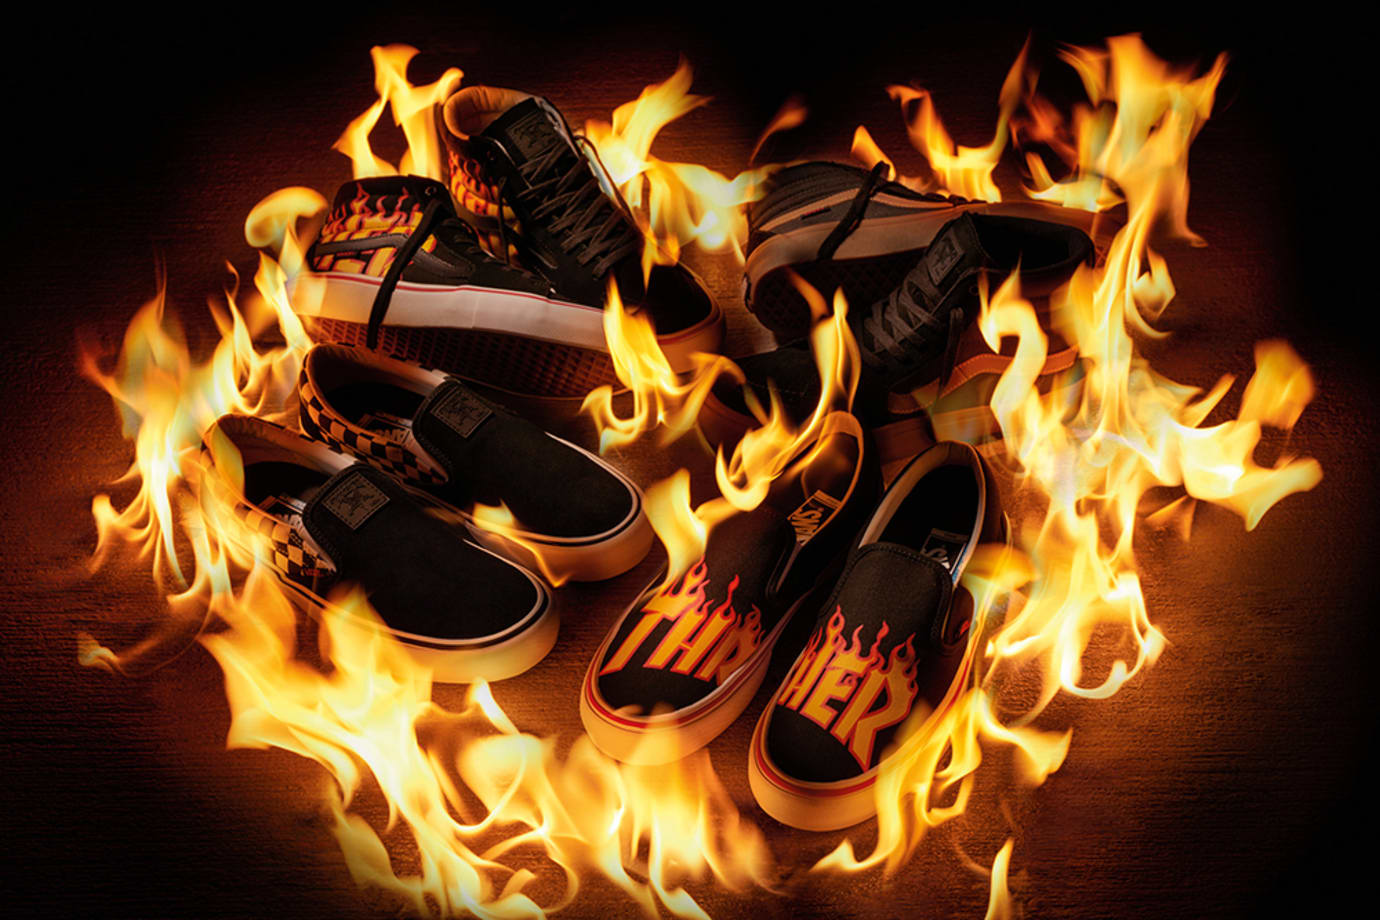 Vans Thrasher Flame Sneakers